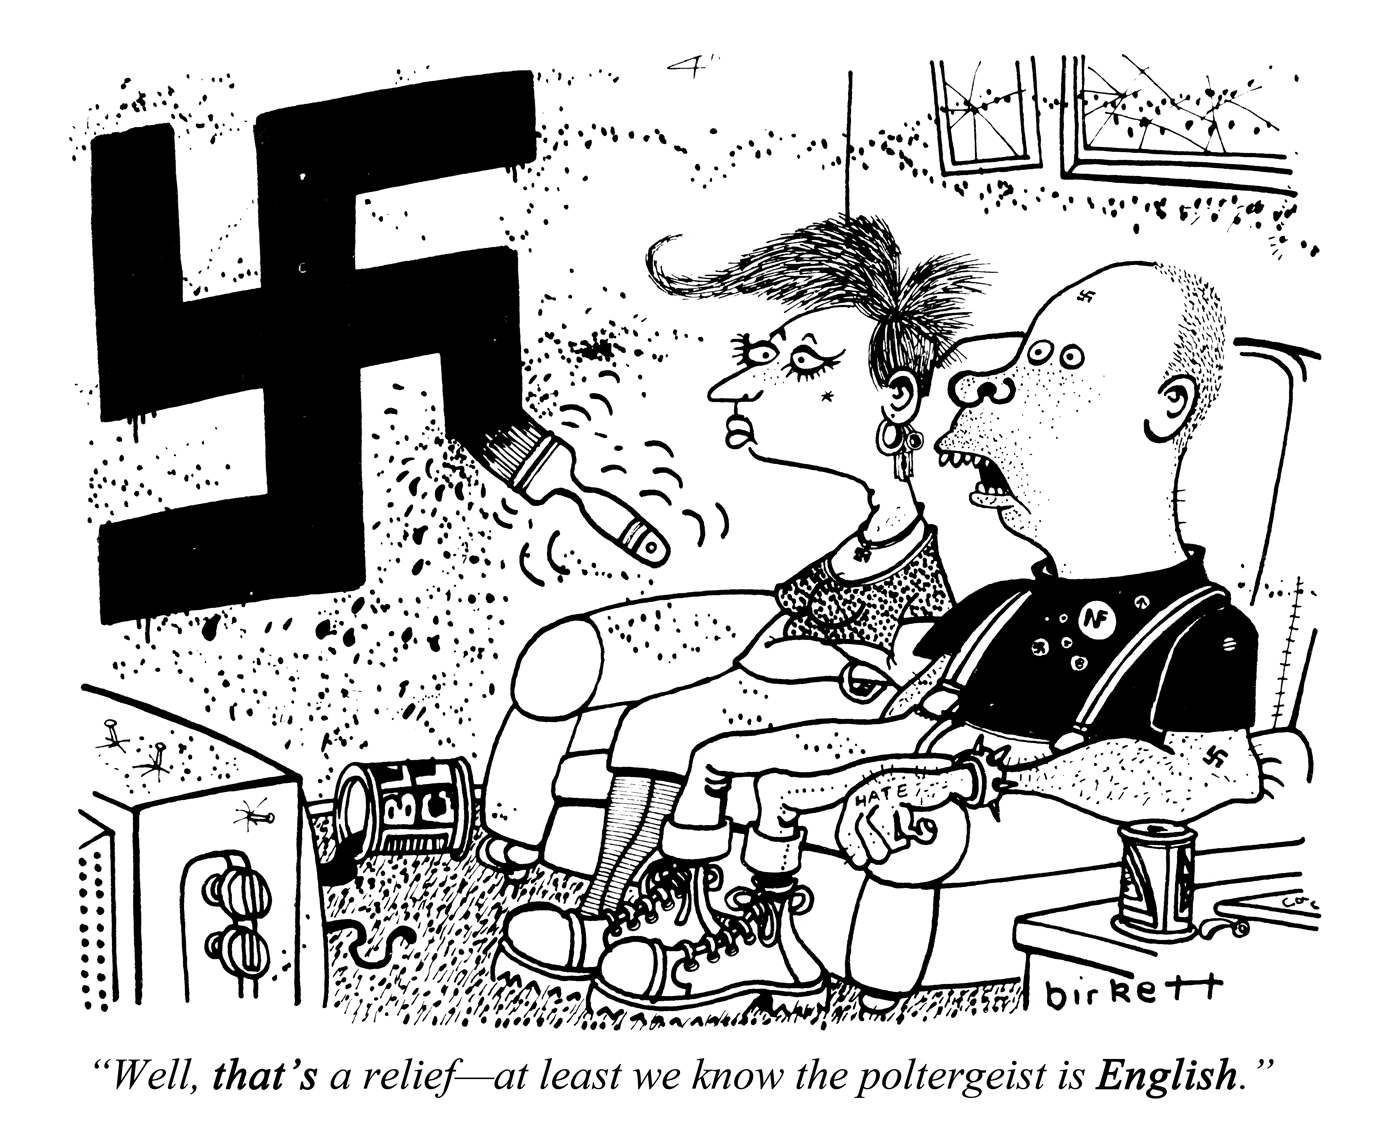 """Well, that's a relief - at least we know the poltergeist is English."" Punch 27 April 1983. By Peter Birkett © Punch Ltd"